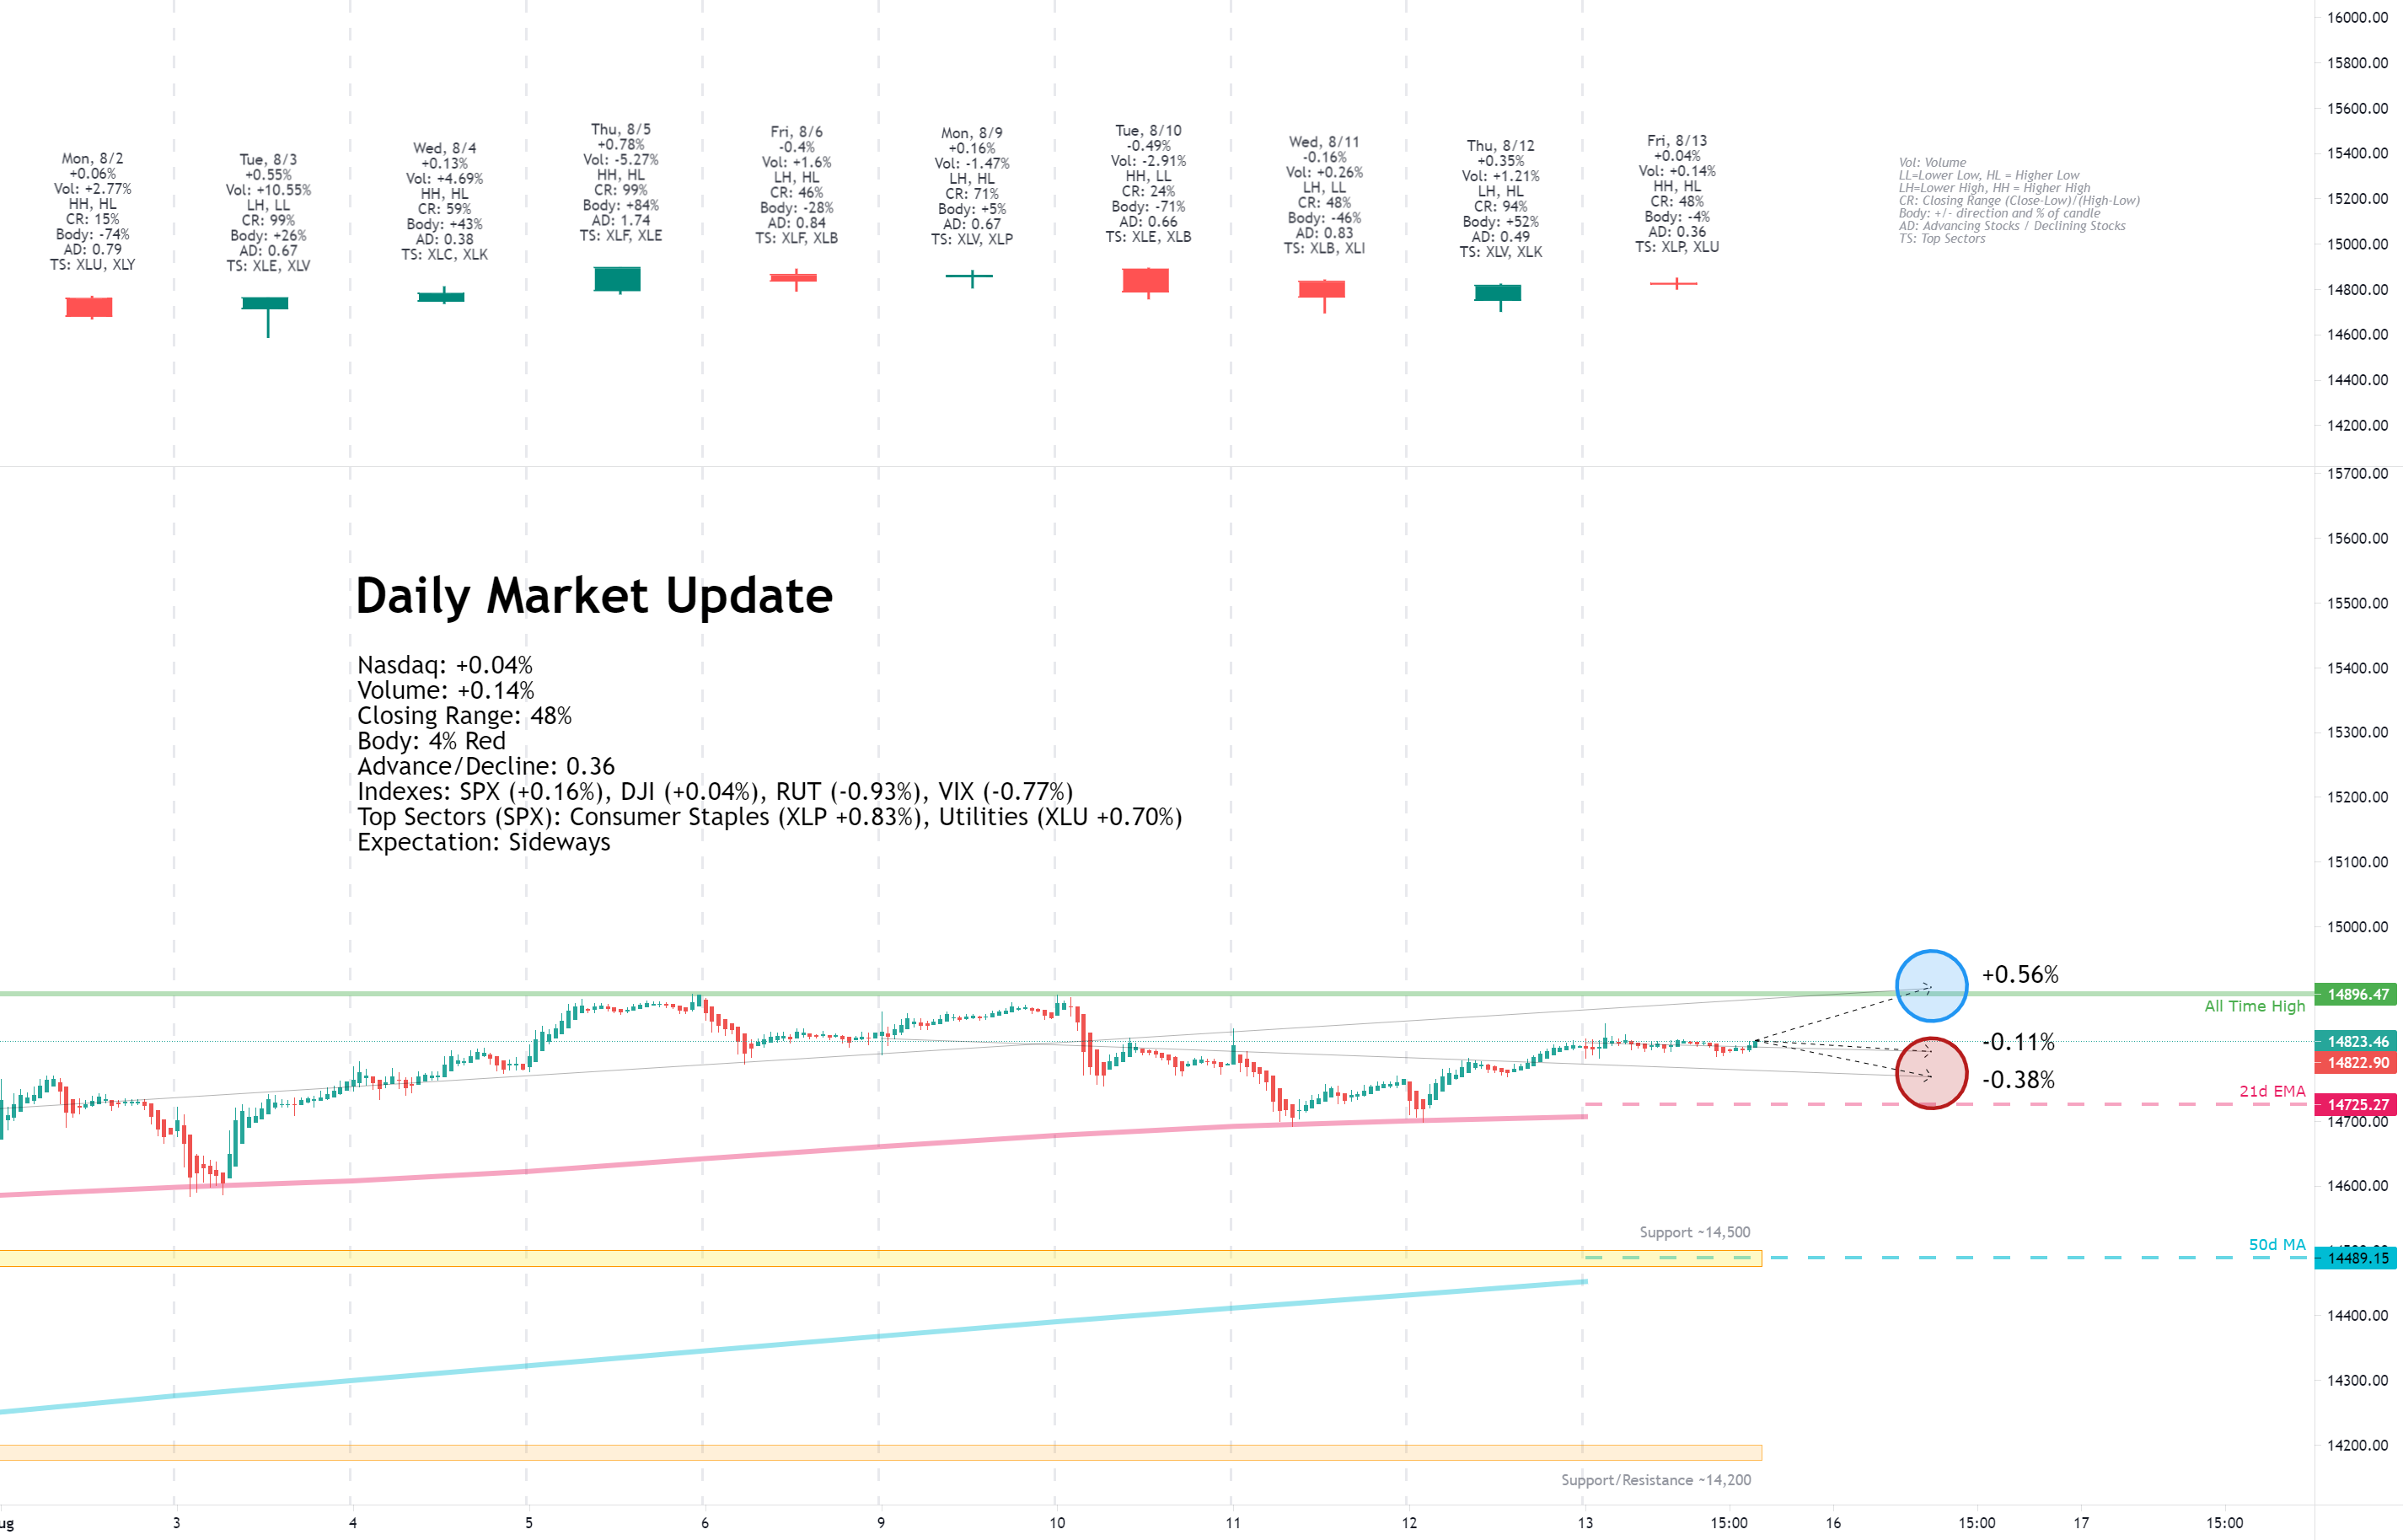 Daily Market Update for 8/13